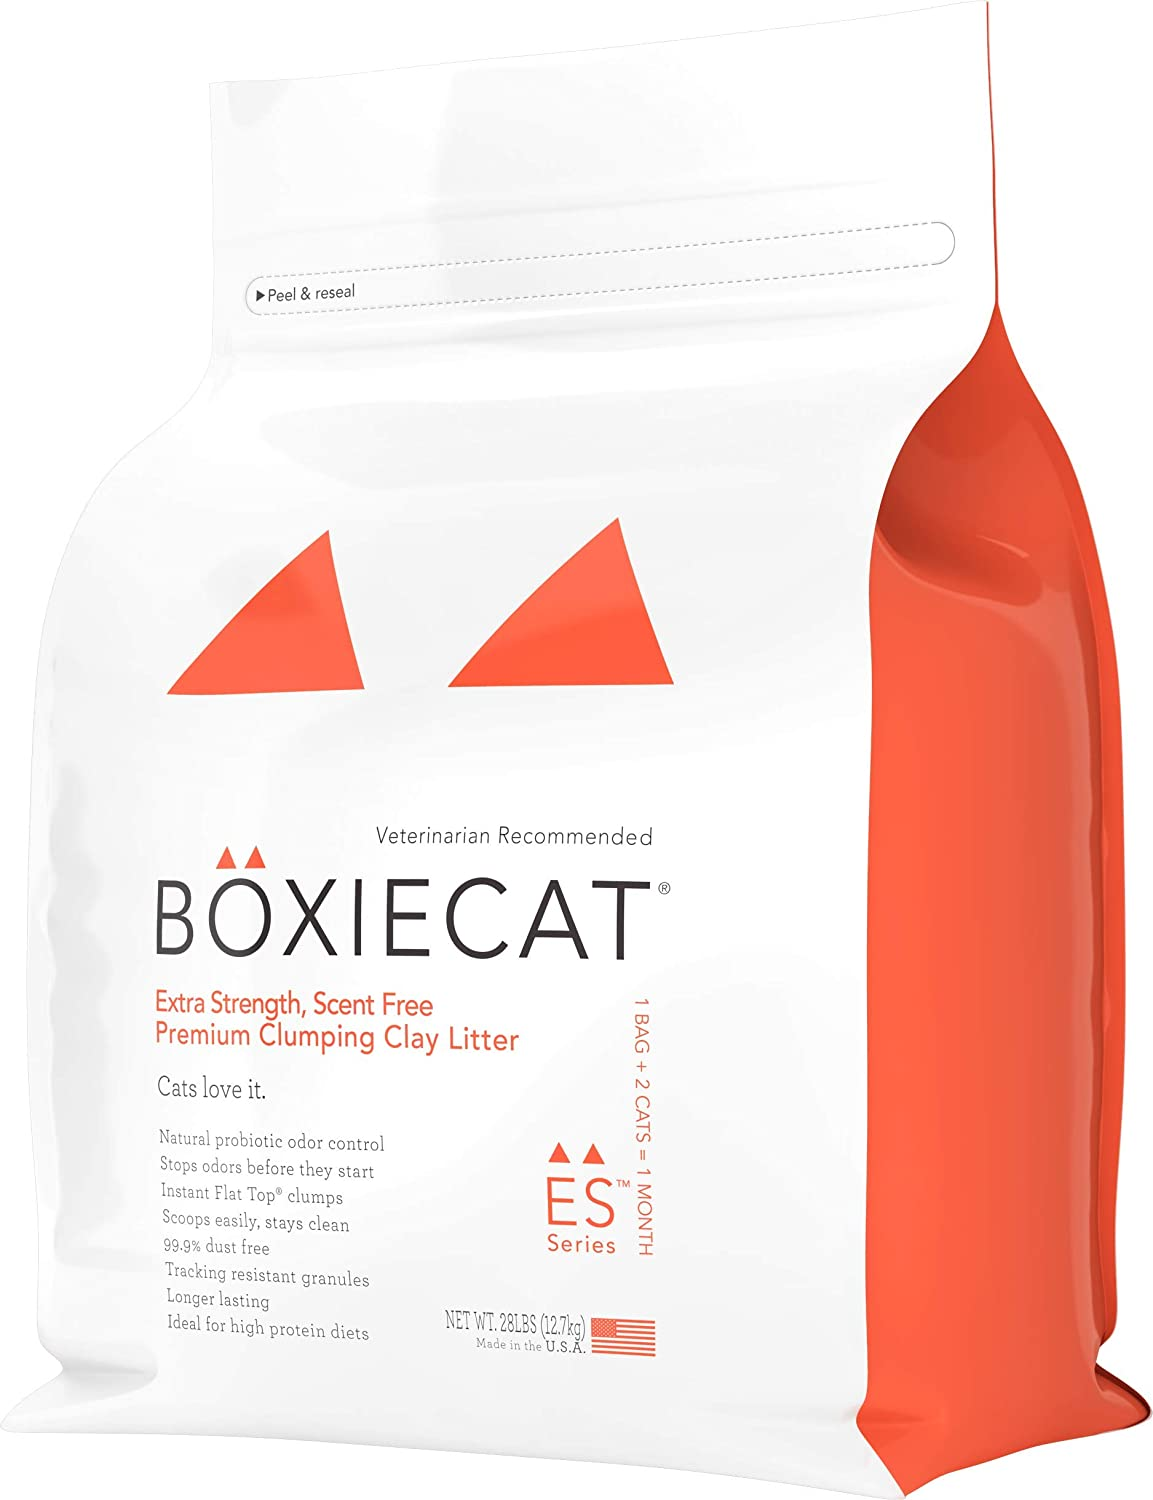 Boxiecat Extra Strength Premium Clumping Cat Litter - Scent Free Multicat - Ultra Clean Litter Box Formulas With Probiotic Powered Odor Control, Hard Clumping Litter, 99.9% Dust Free